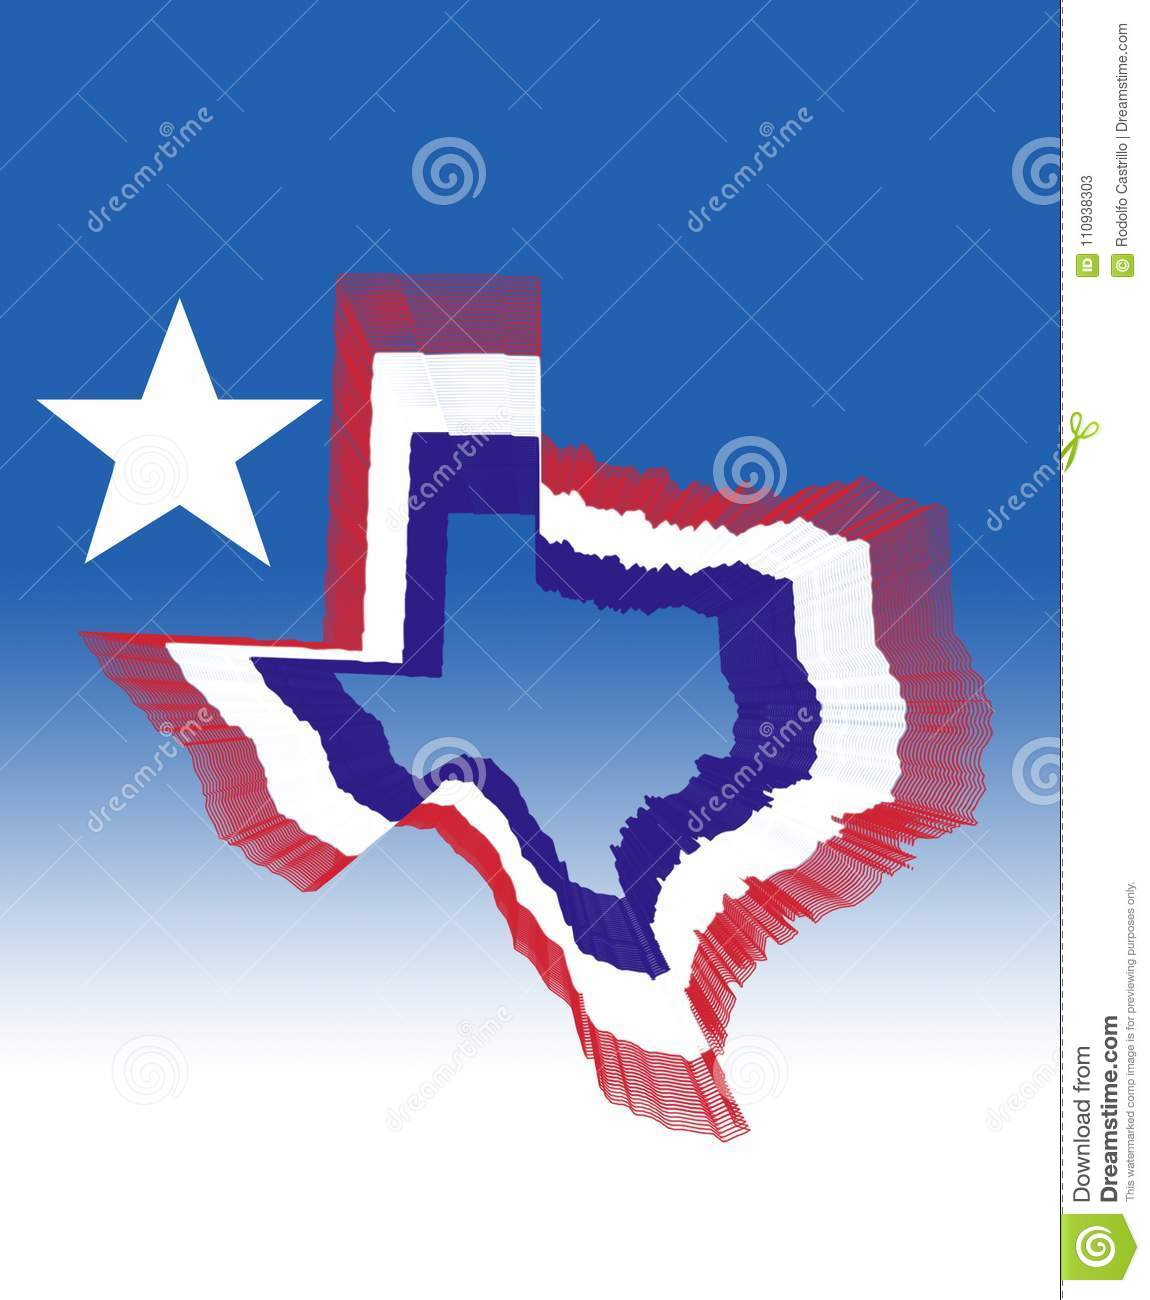 the texas flag and mapis the official symbol of the state of the lonely star named for the only star of the red white and blue flag